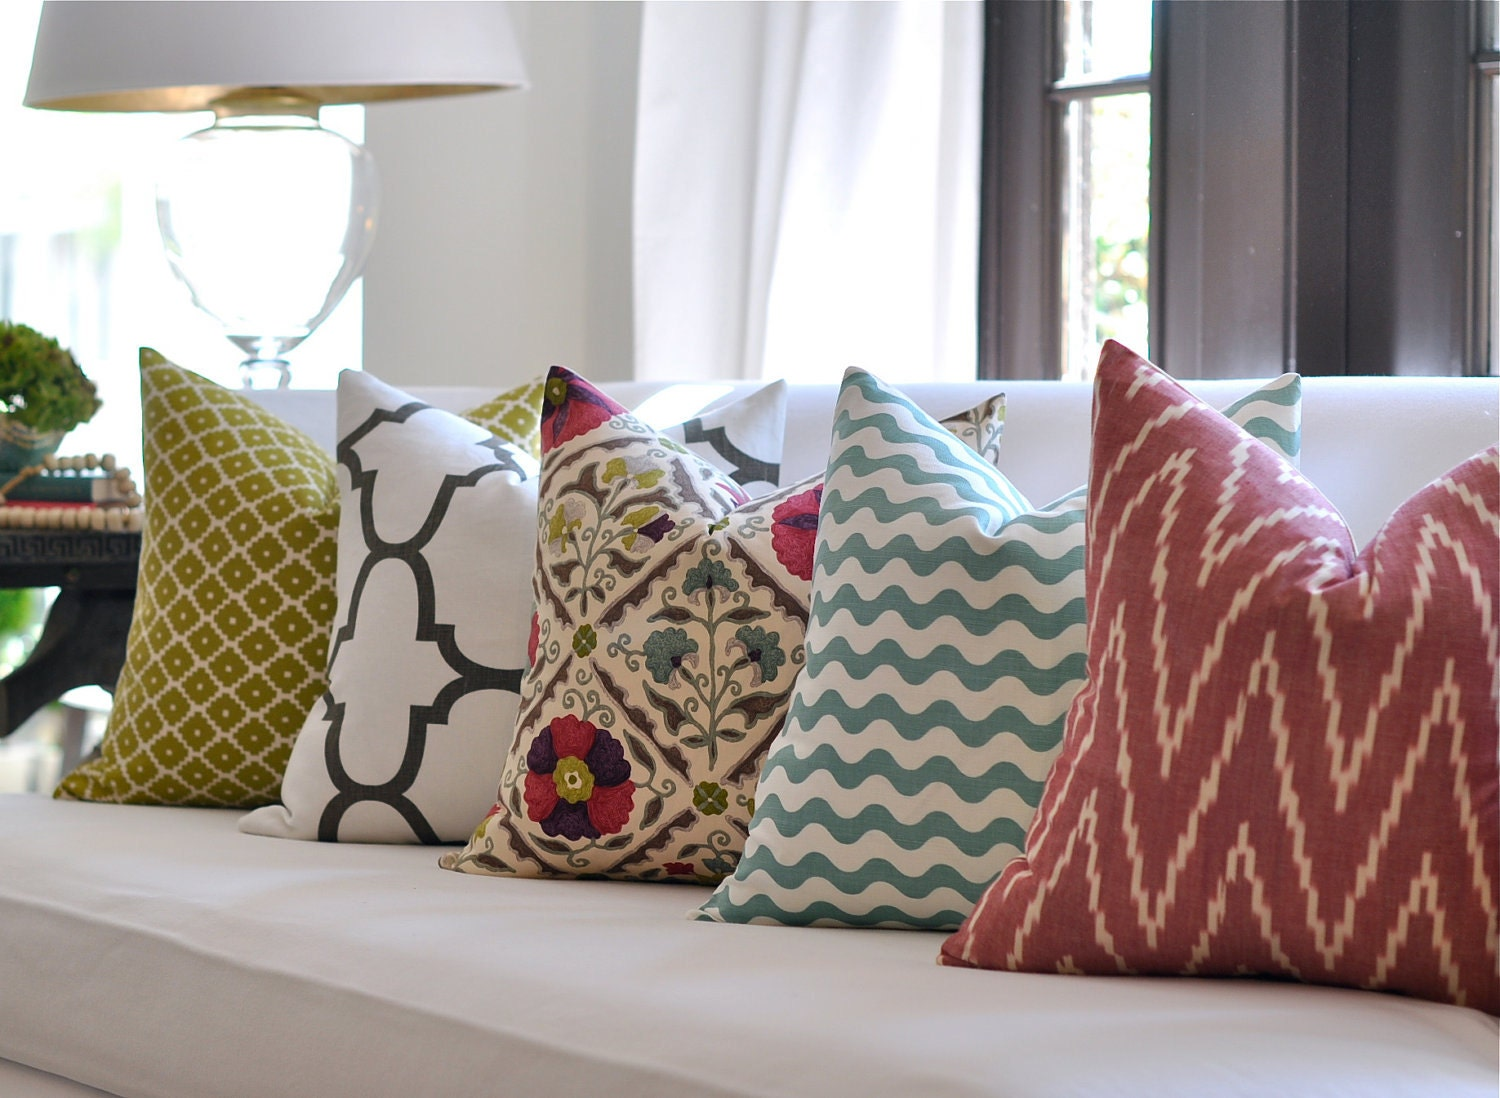 Mixed-print pillows